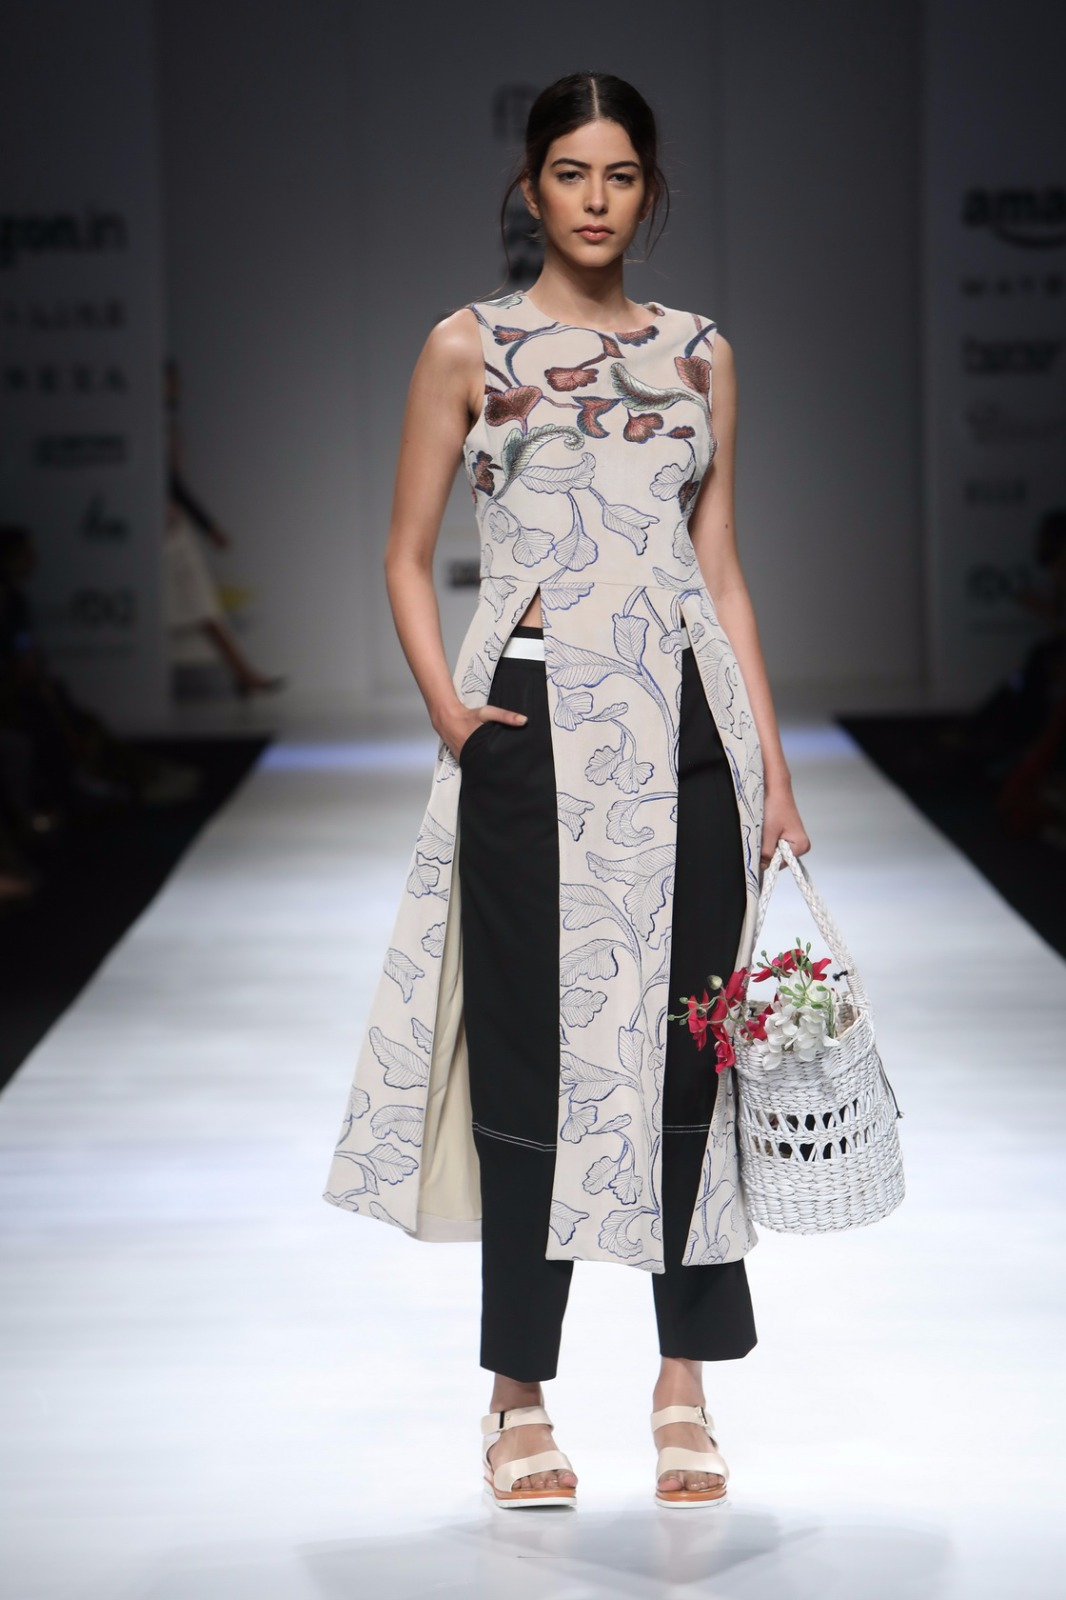 http://www.talksassy.com/wp-content/uploads/2017/03/Amazon-India-Fashion-Week-Autumn-Winter-2017-11.jpg